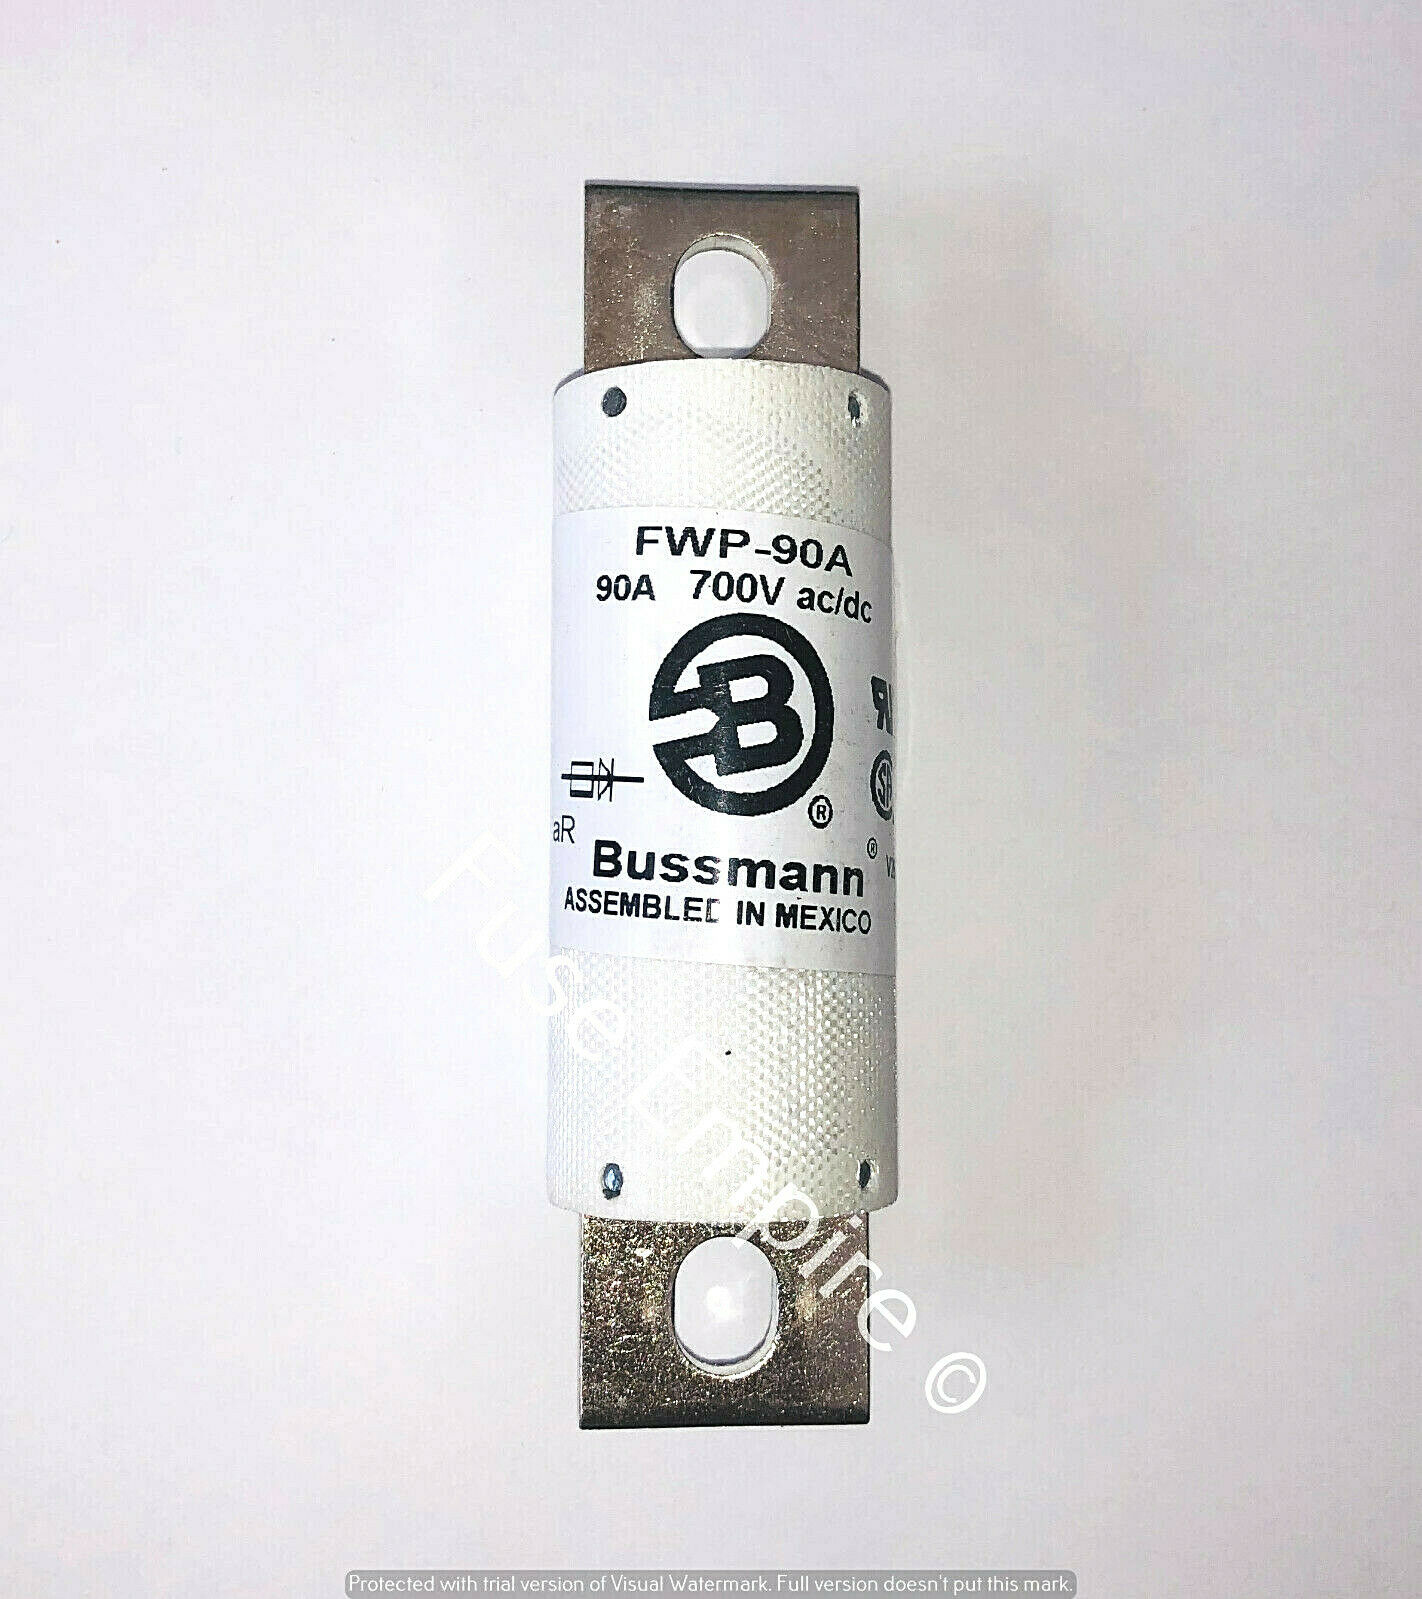 New In Box Bussmann Fwp 90a Semiconductor Fuse 700v 2500 200 Amp Porcelain 1 Of 1only 4 Available